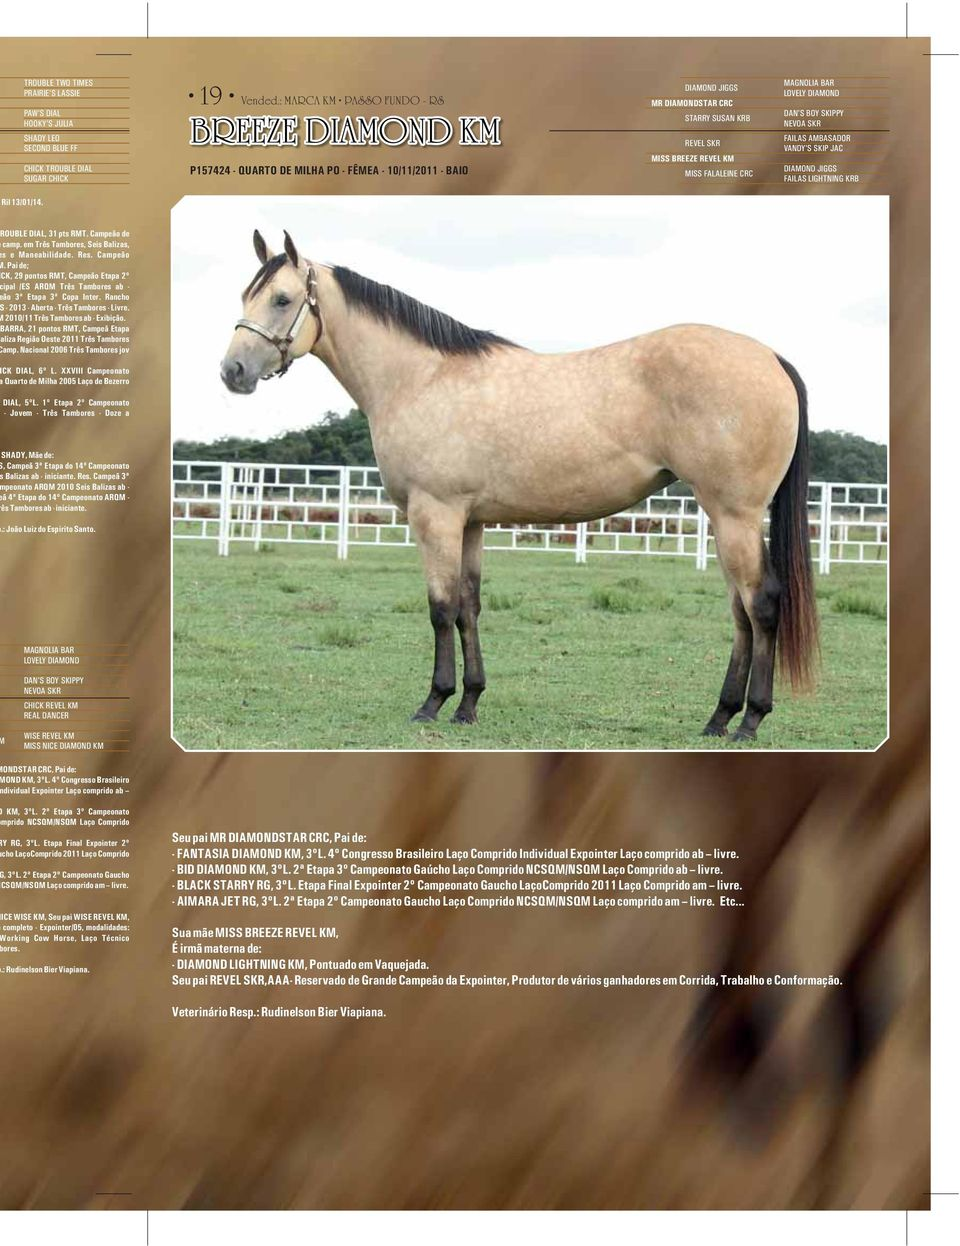 CRC MAGNOLIA BAR LOVELY DIAMOND DAN'S BOY SKIPPY NEVOA SKR FAILAS AMBASADOR VANDY'S SKIP JAC DIAMOND JIGGS FAILAS LIGHTNING KRB Ril 13/01/14. ROUBLE DIAL, 31 pts RMT. Campeão de camp.